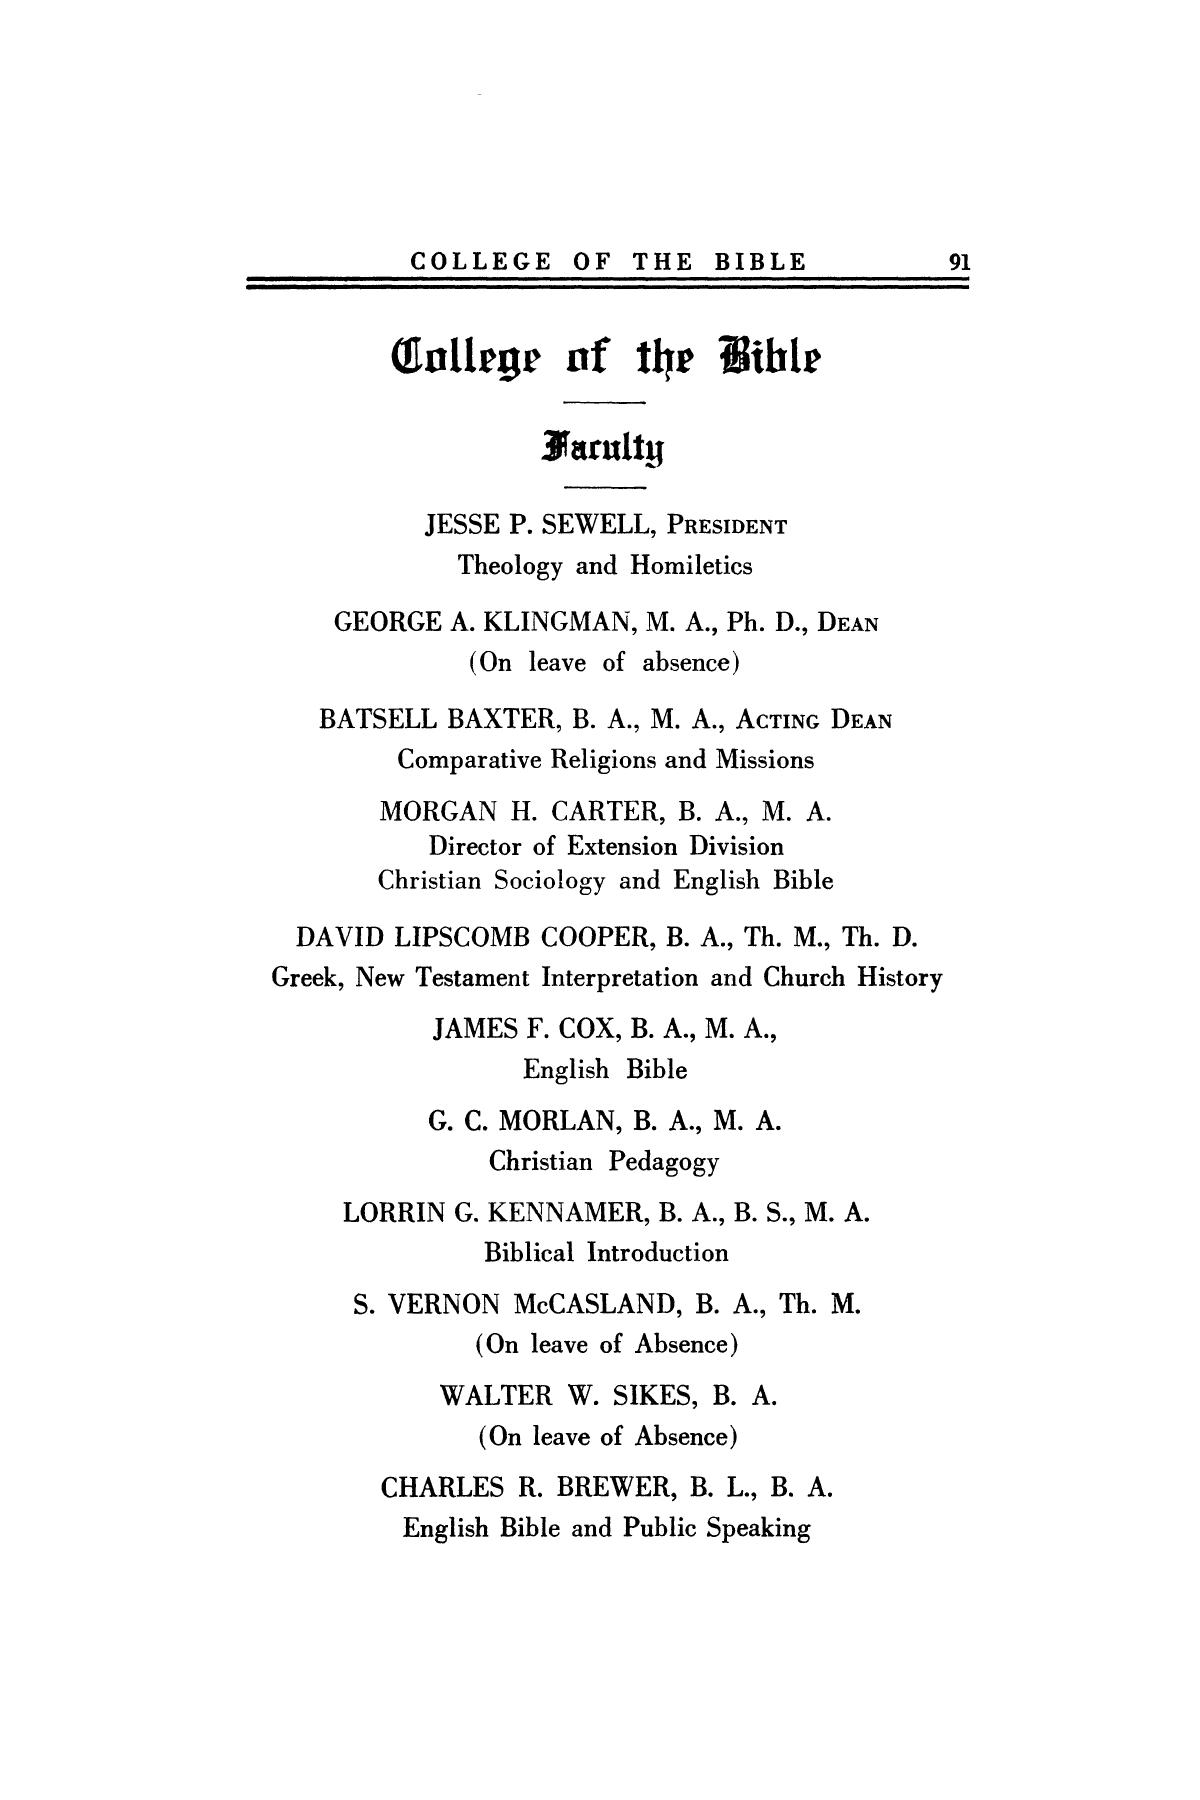 Catalog of Abilene Christian College, 1923-1924                                                                                                      91